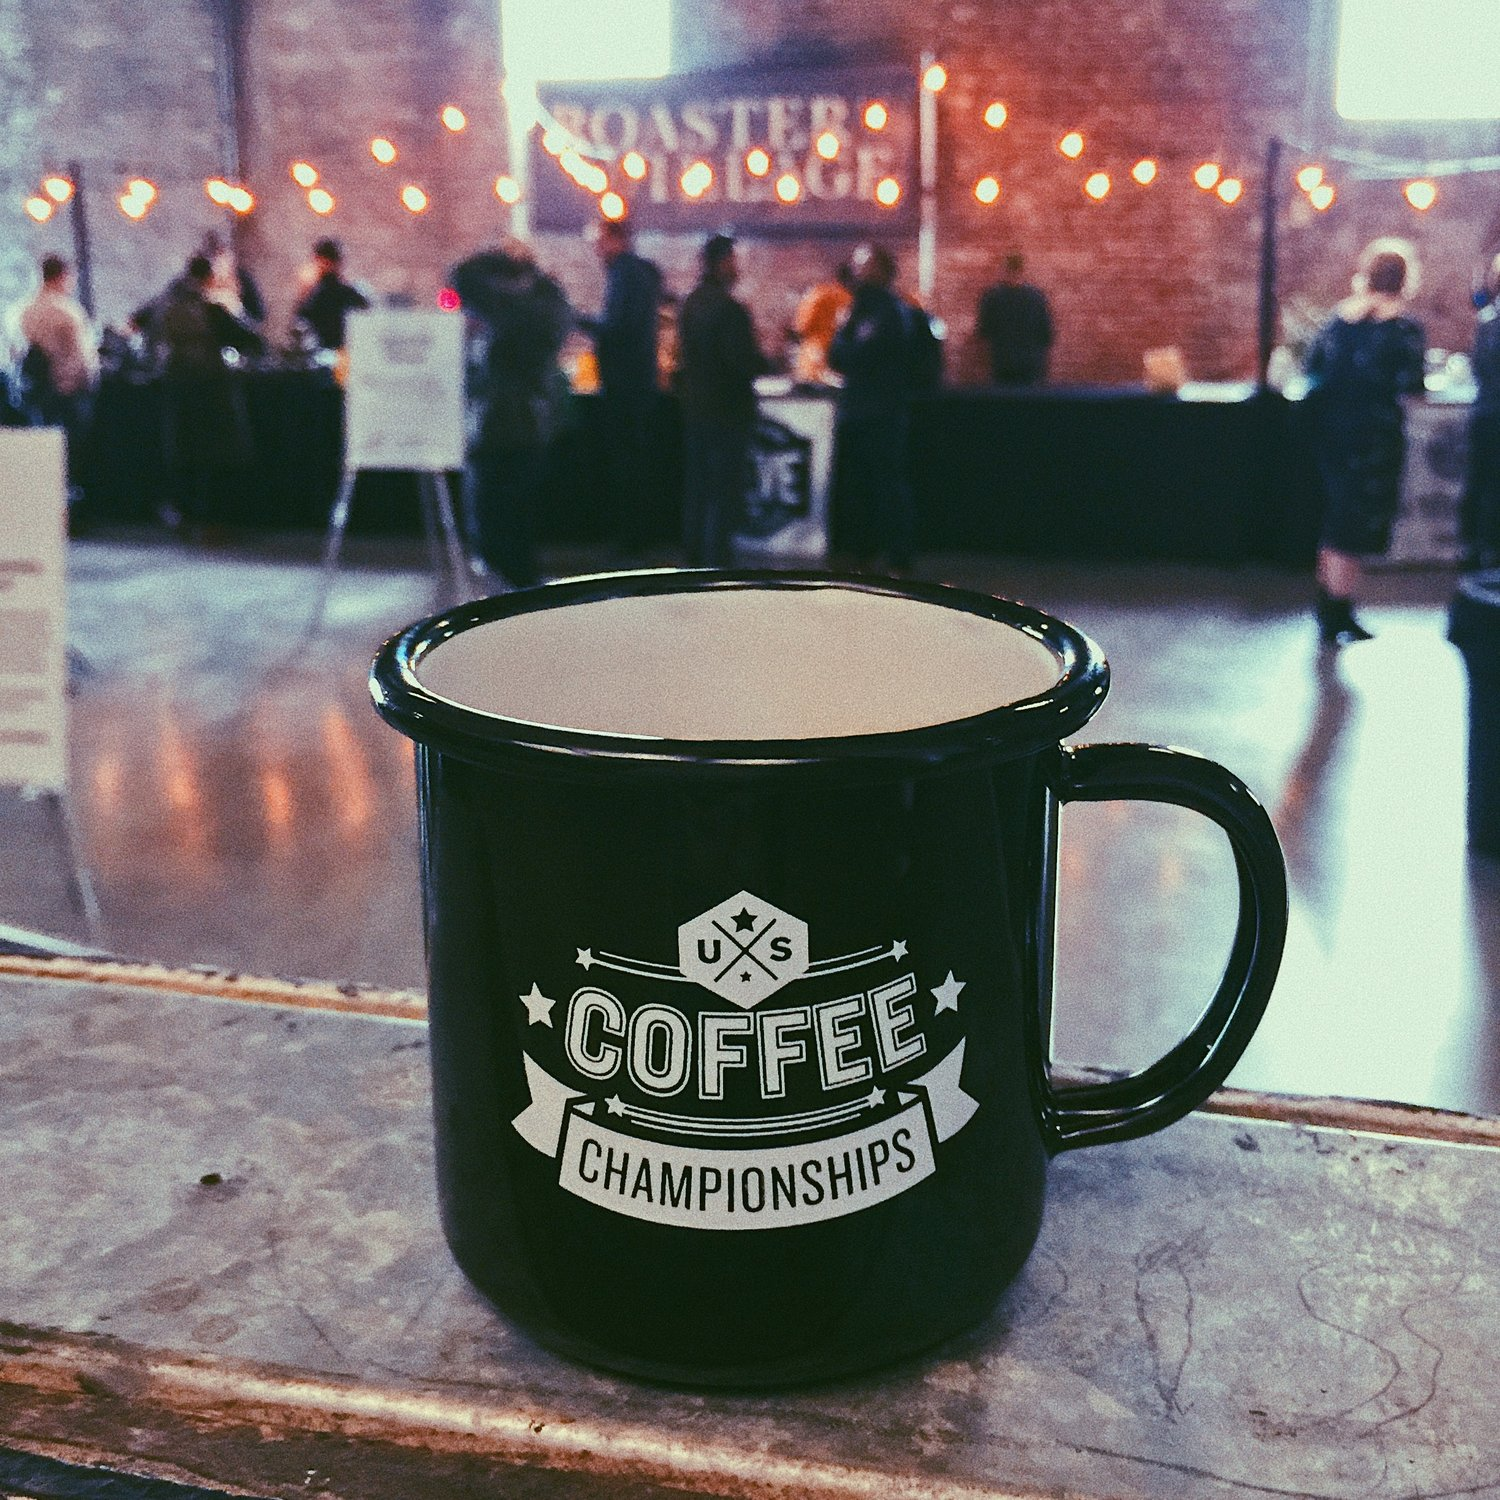 Latest news us coffee championships results announced for us coffee championships qualifying competitions held in new orleans malvernweather Gallery